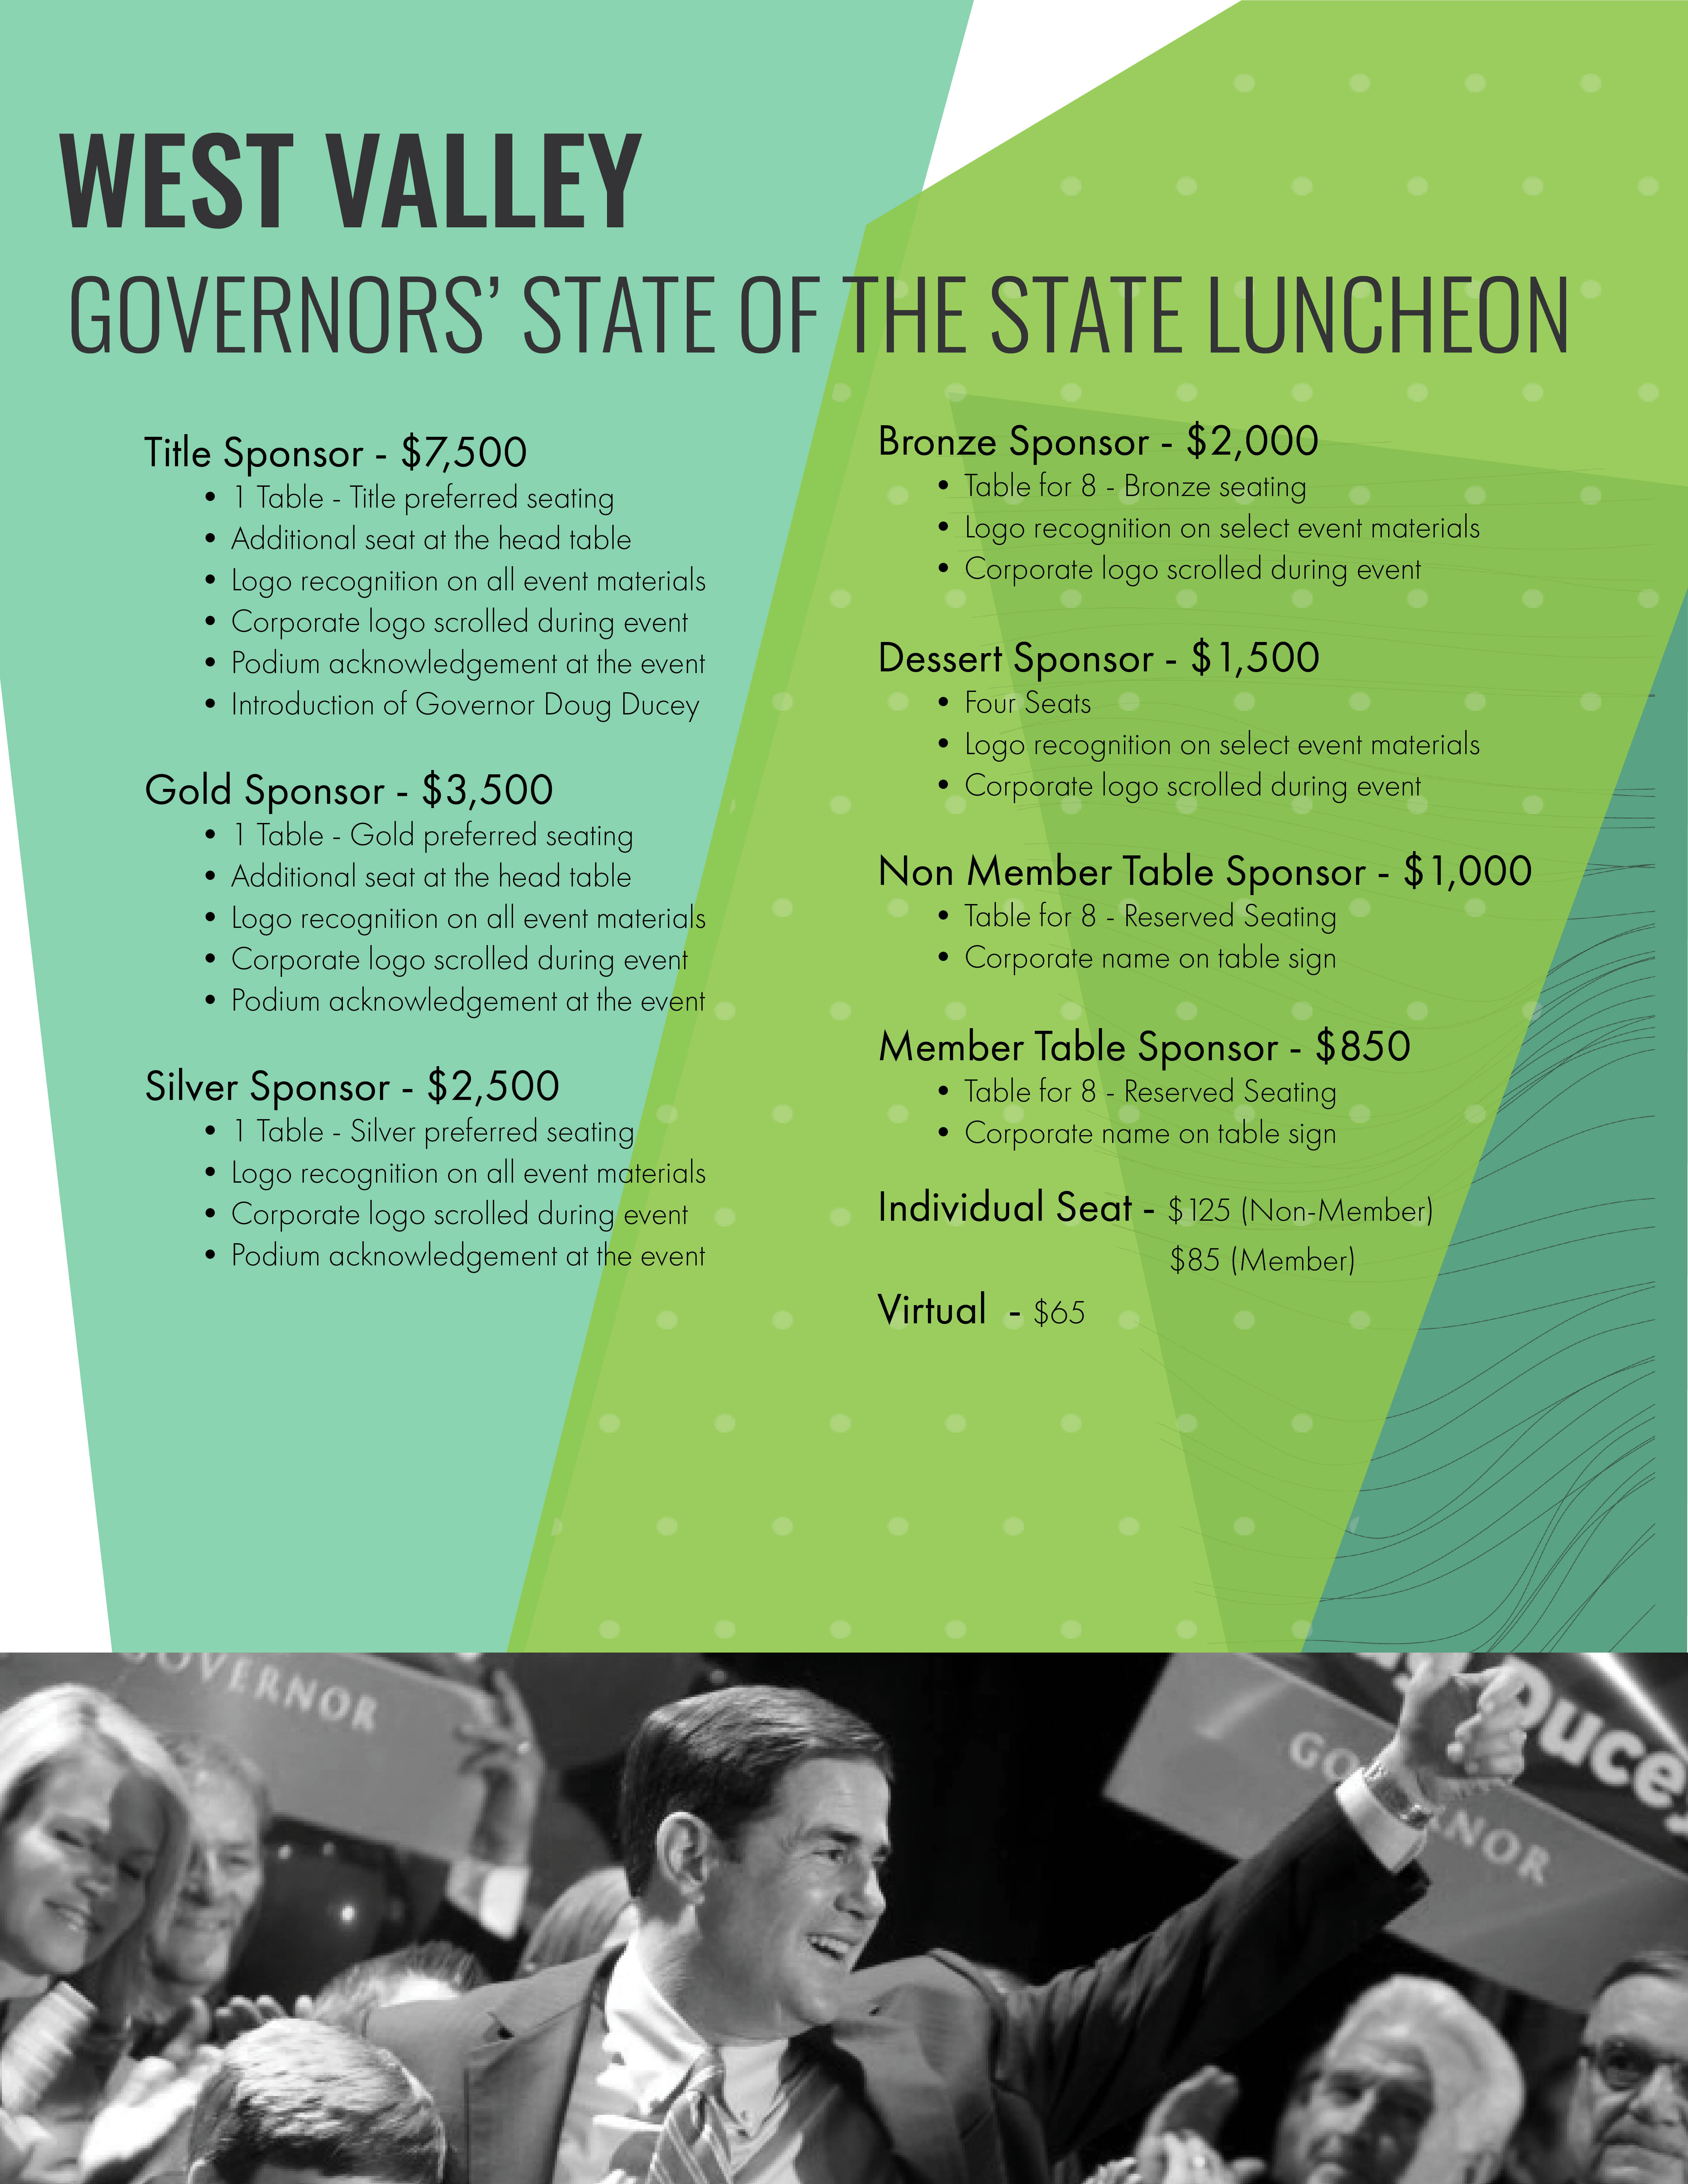 GOVERNORS' STATE OF THE STATE LUNCHEON